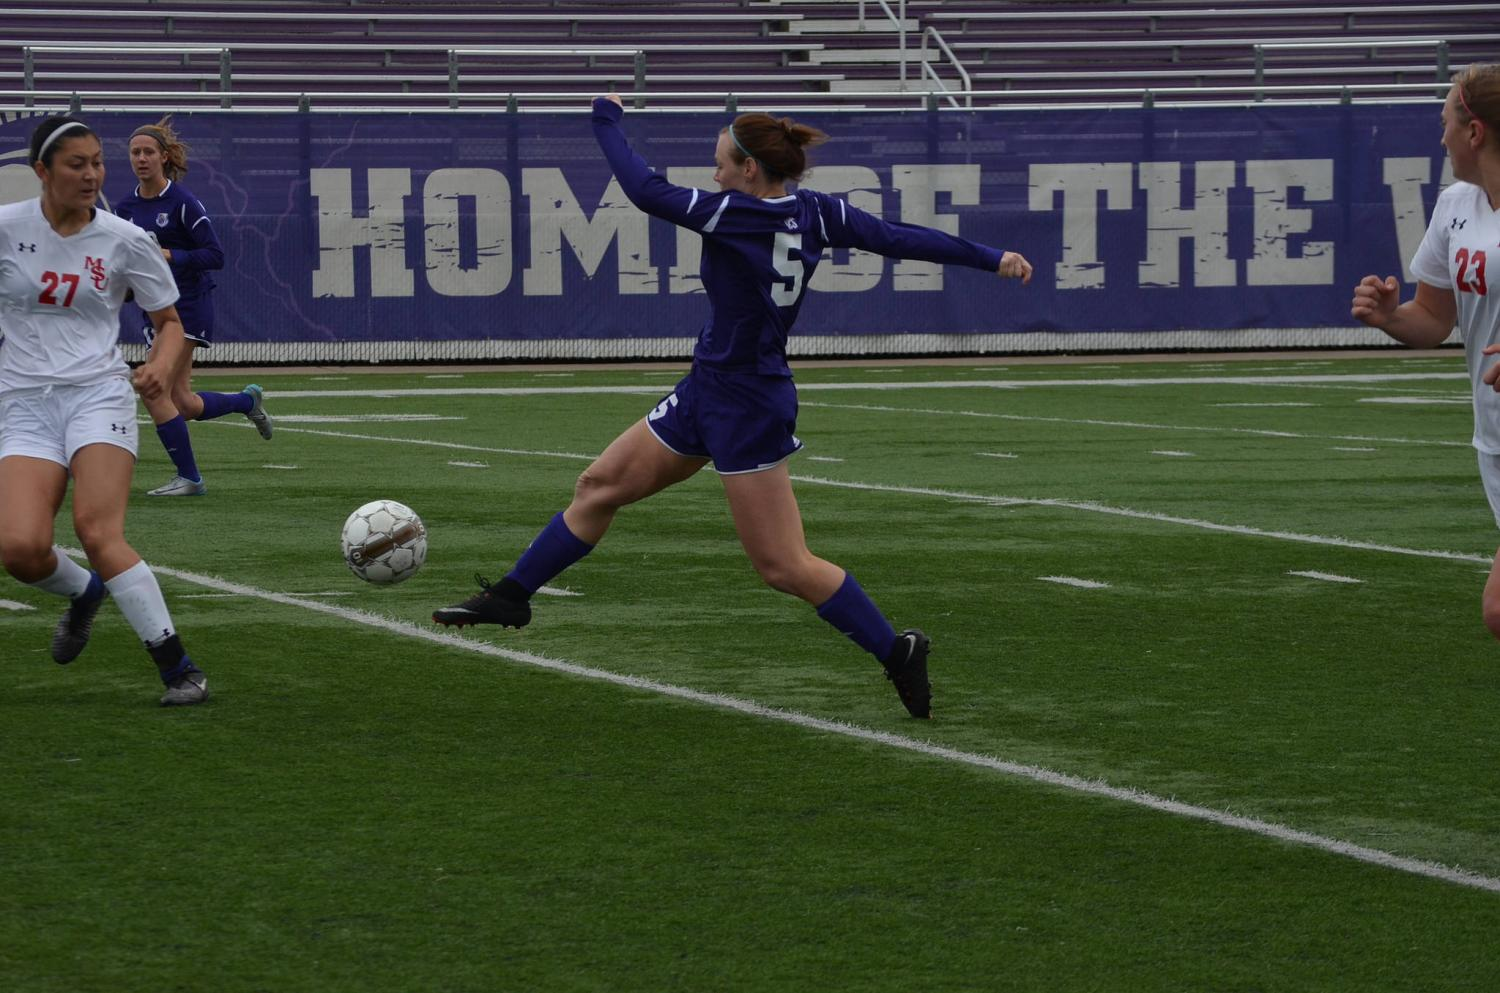 Junior forward Darian Molter gets ready to kick the ball down field at Sunday's game against Minot State University at Altra Credit Federal Union Stadium.